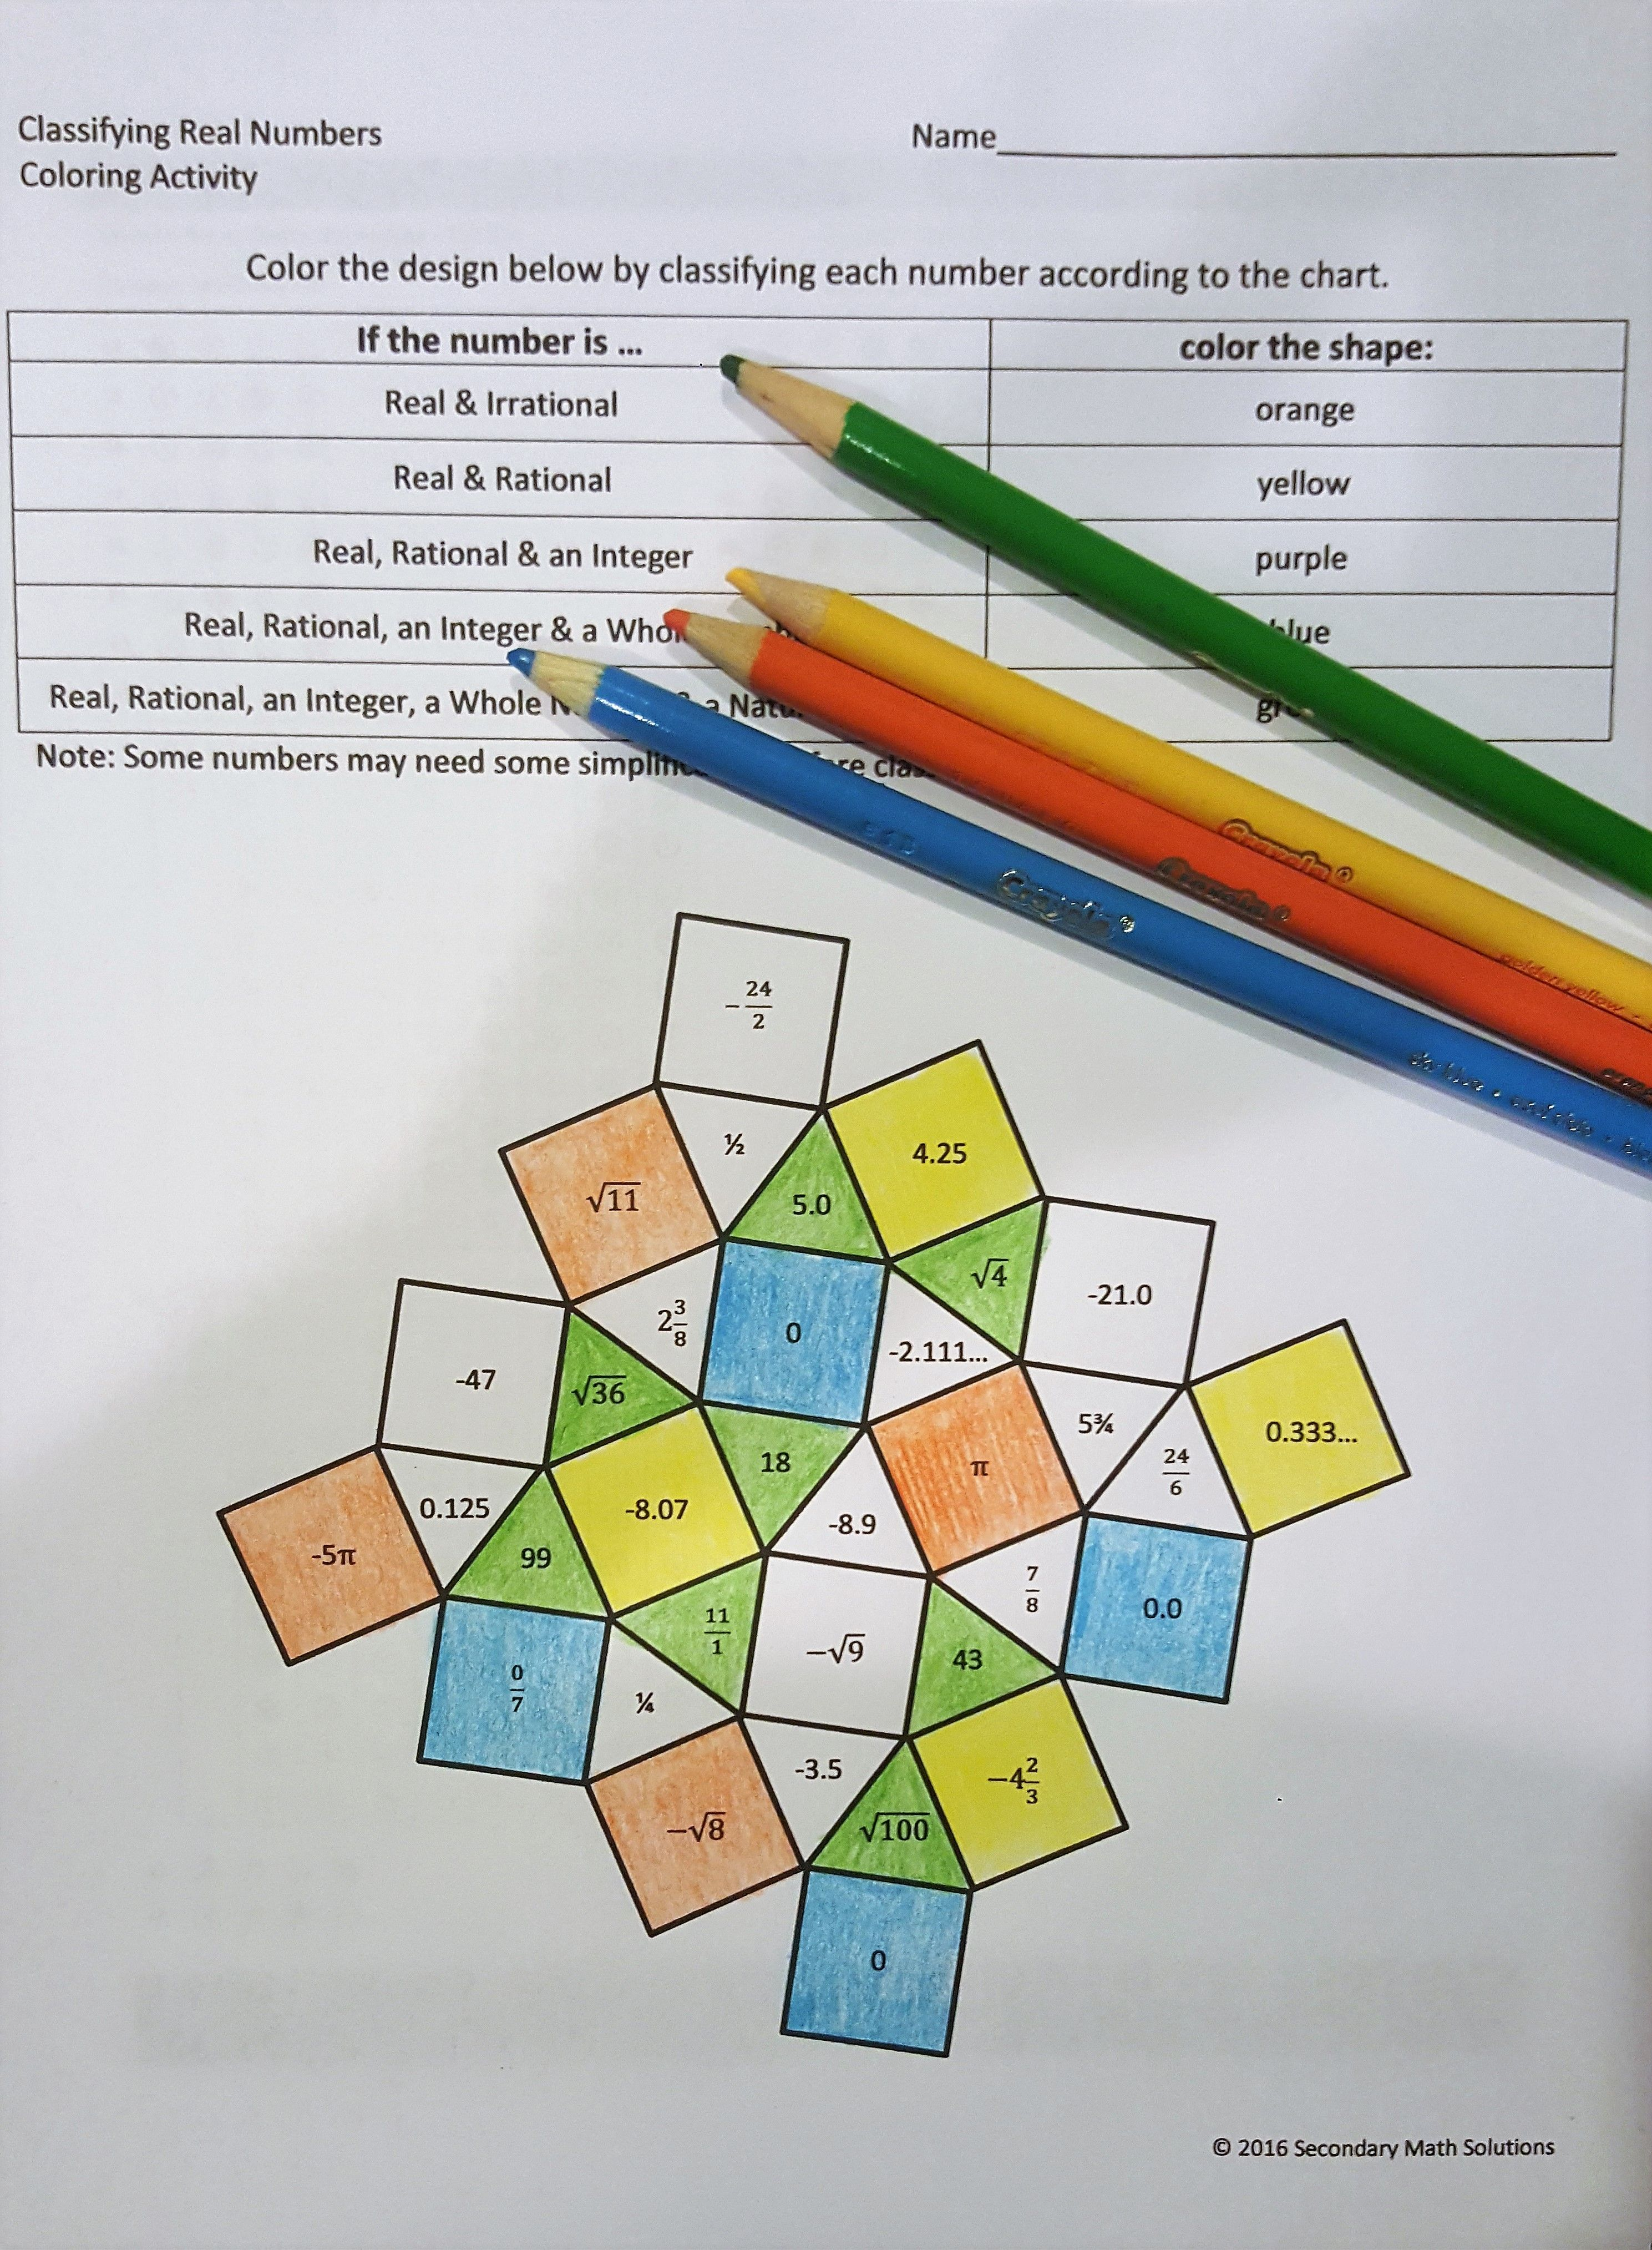 This is a one-sided practice page over classifying real numbers. The ...